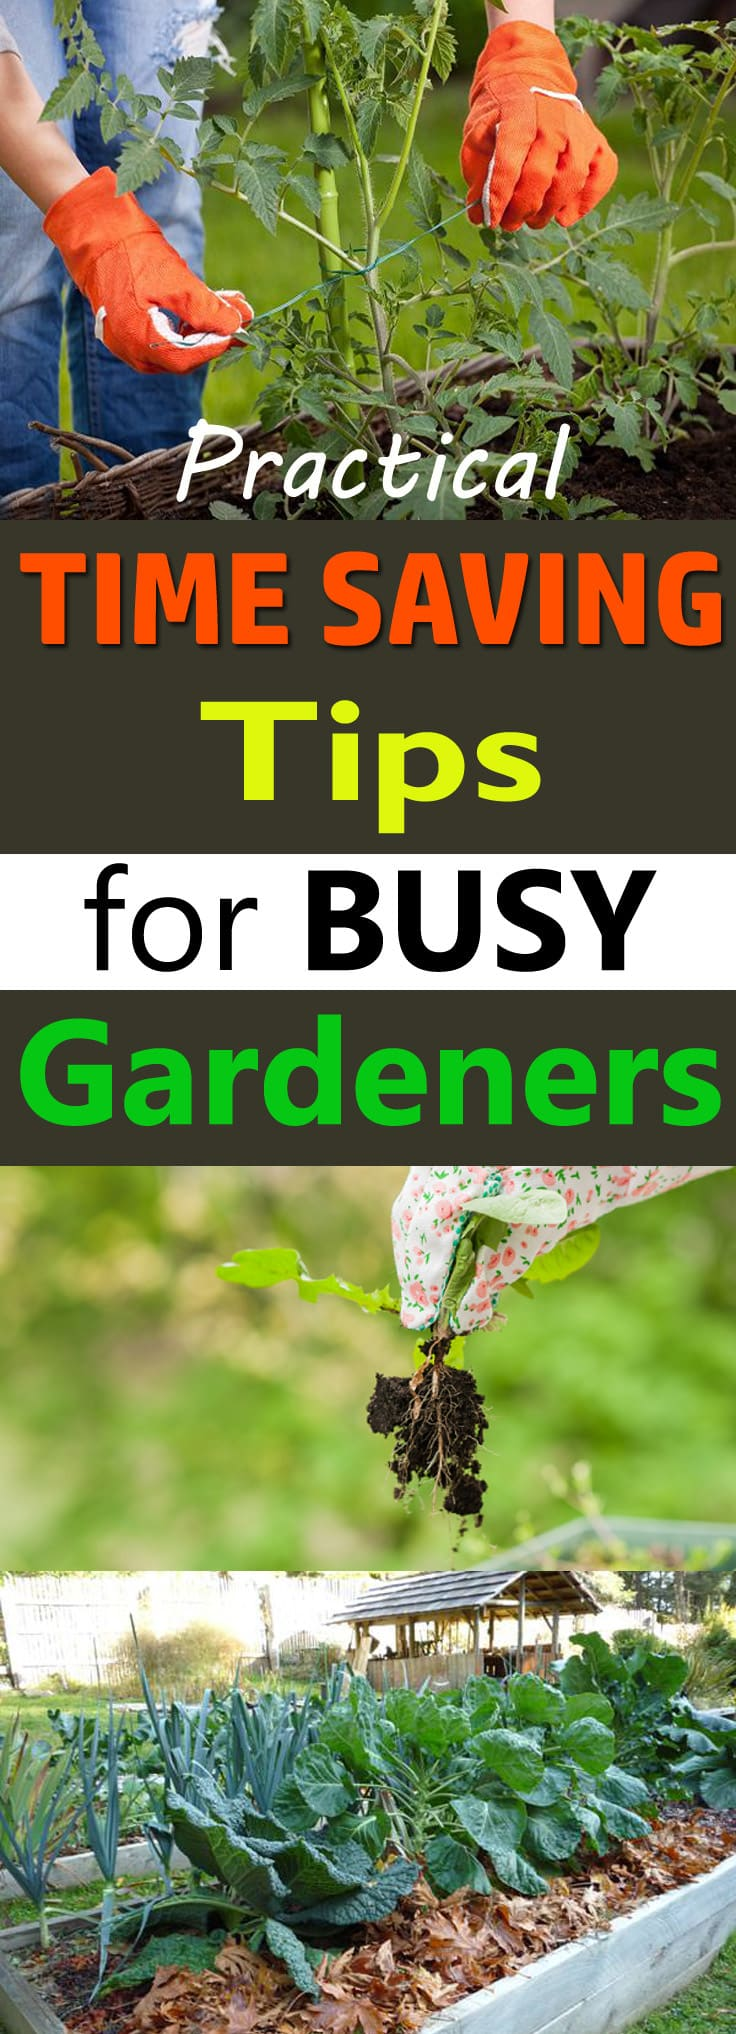 With these time saving tips for the garden, you can enjoy your garden more without working hard.